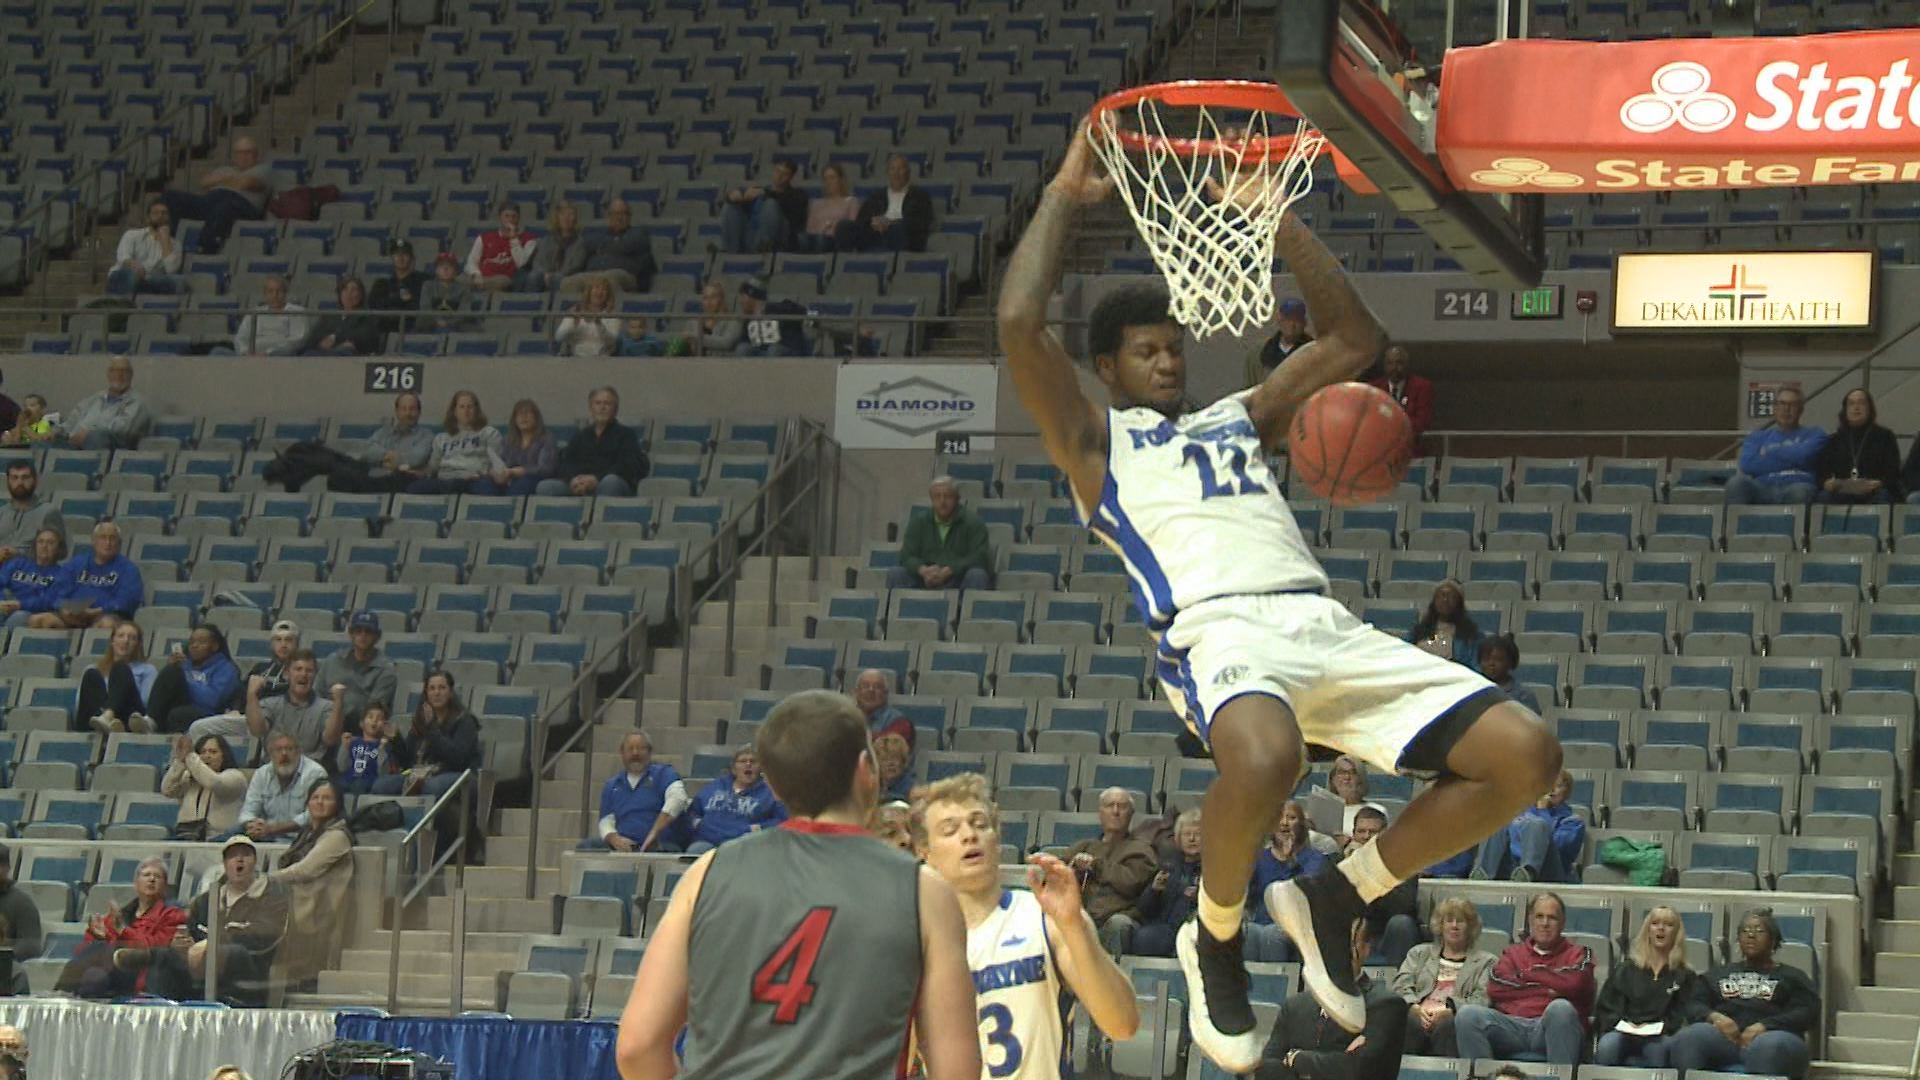 IPFW MBB THURS00000000_298886